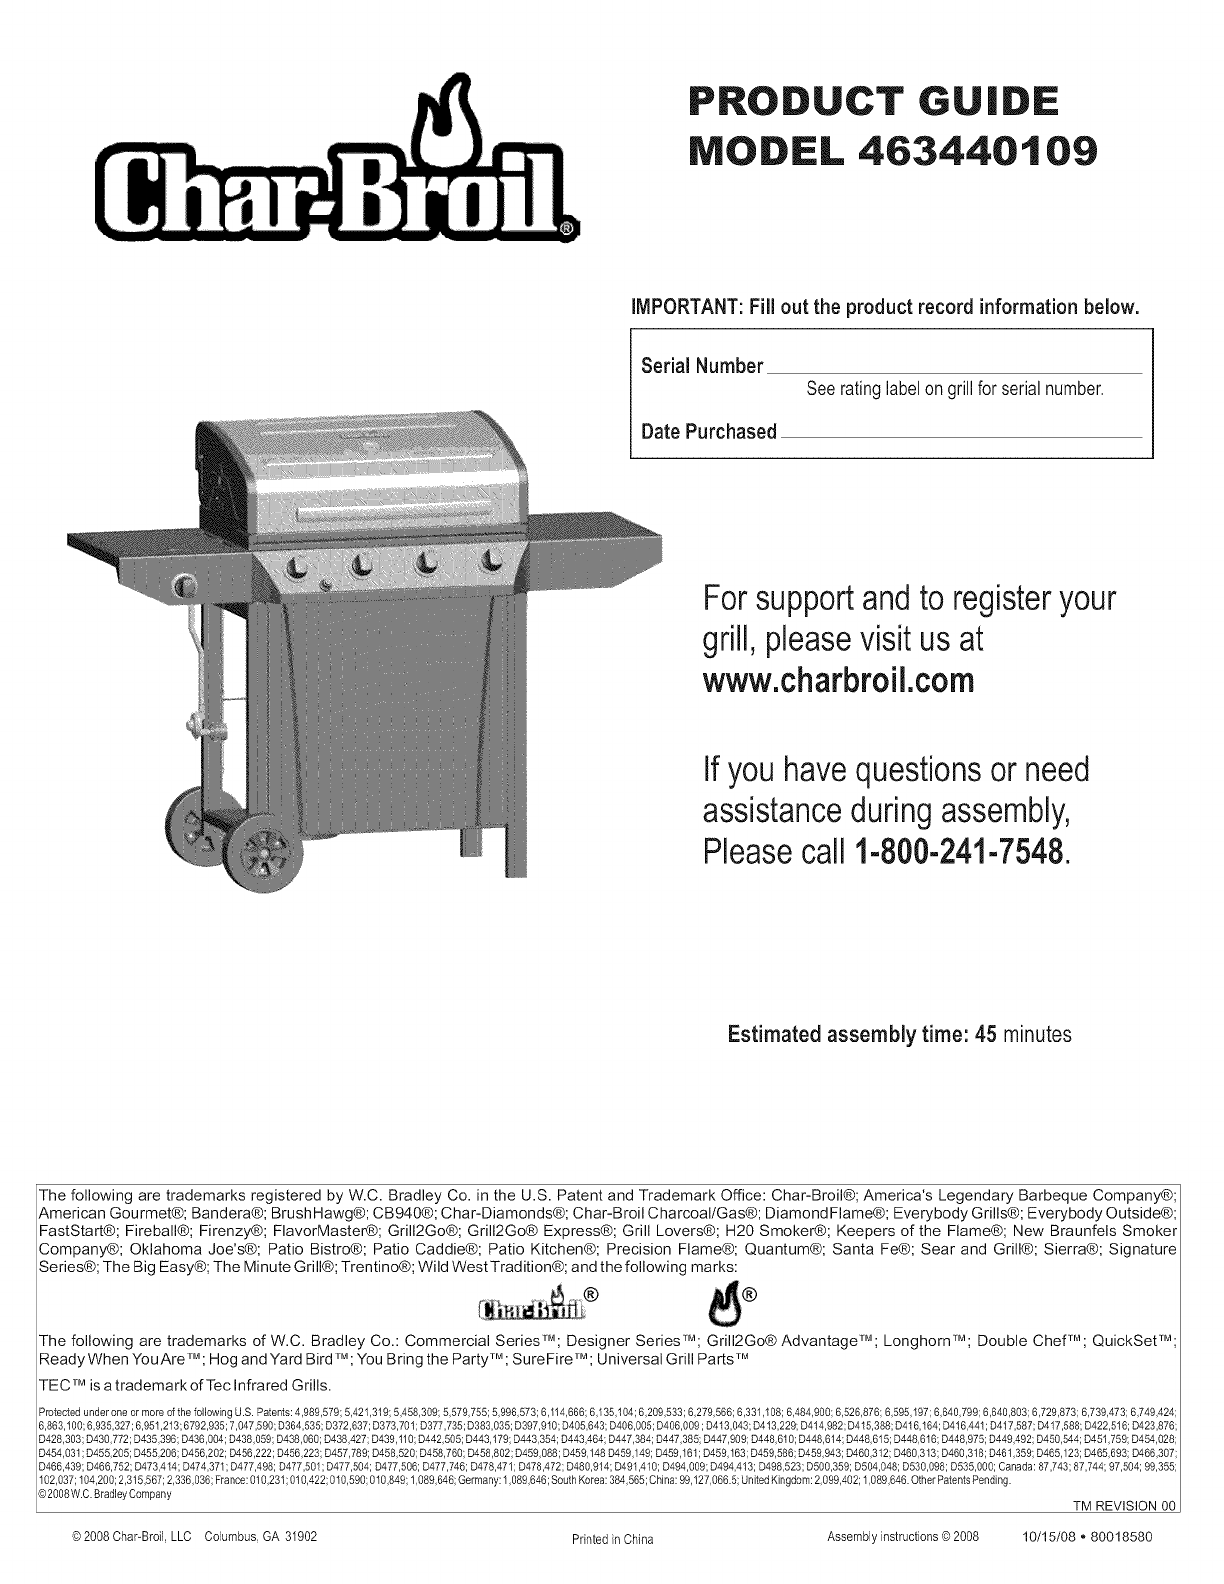 Product guide model 463741510 char-broil grills.